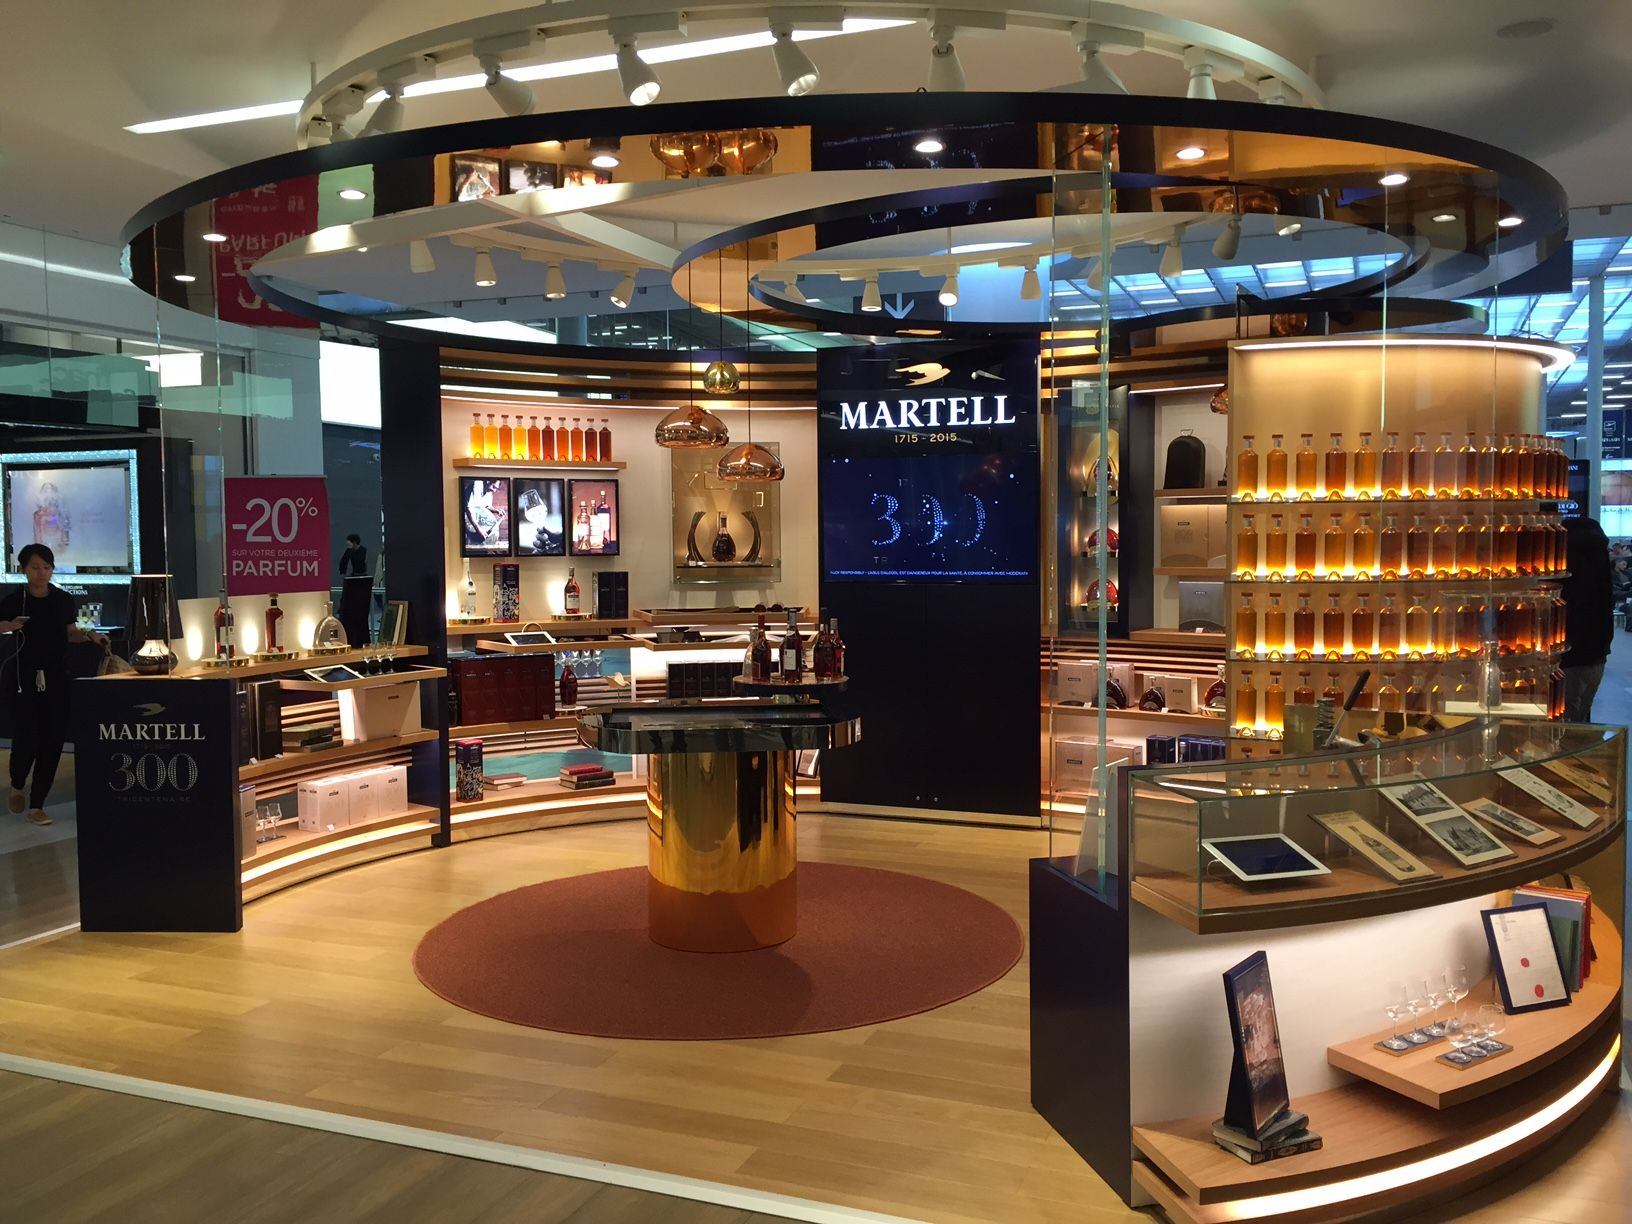 martell celebrates its 300th anniversary with a luxury pop up store in paris charles de gaulle. Black Bedroom Furniture Sets. Home Design Ideas